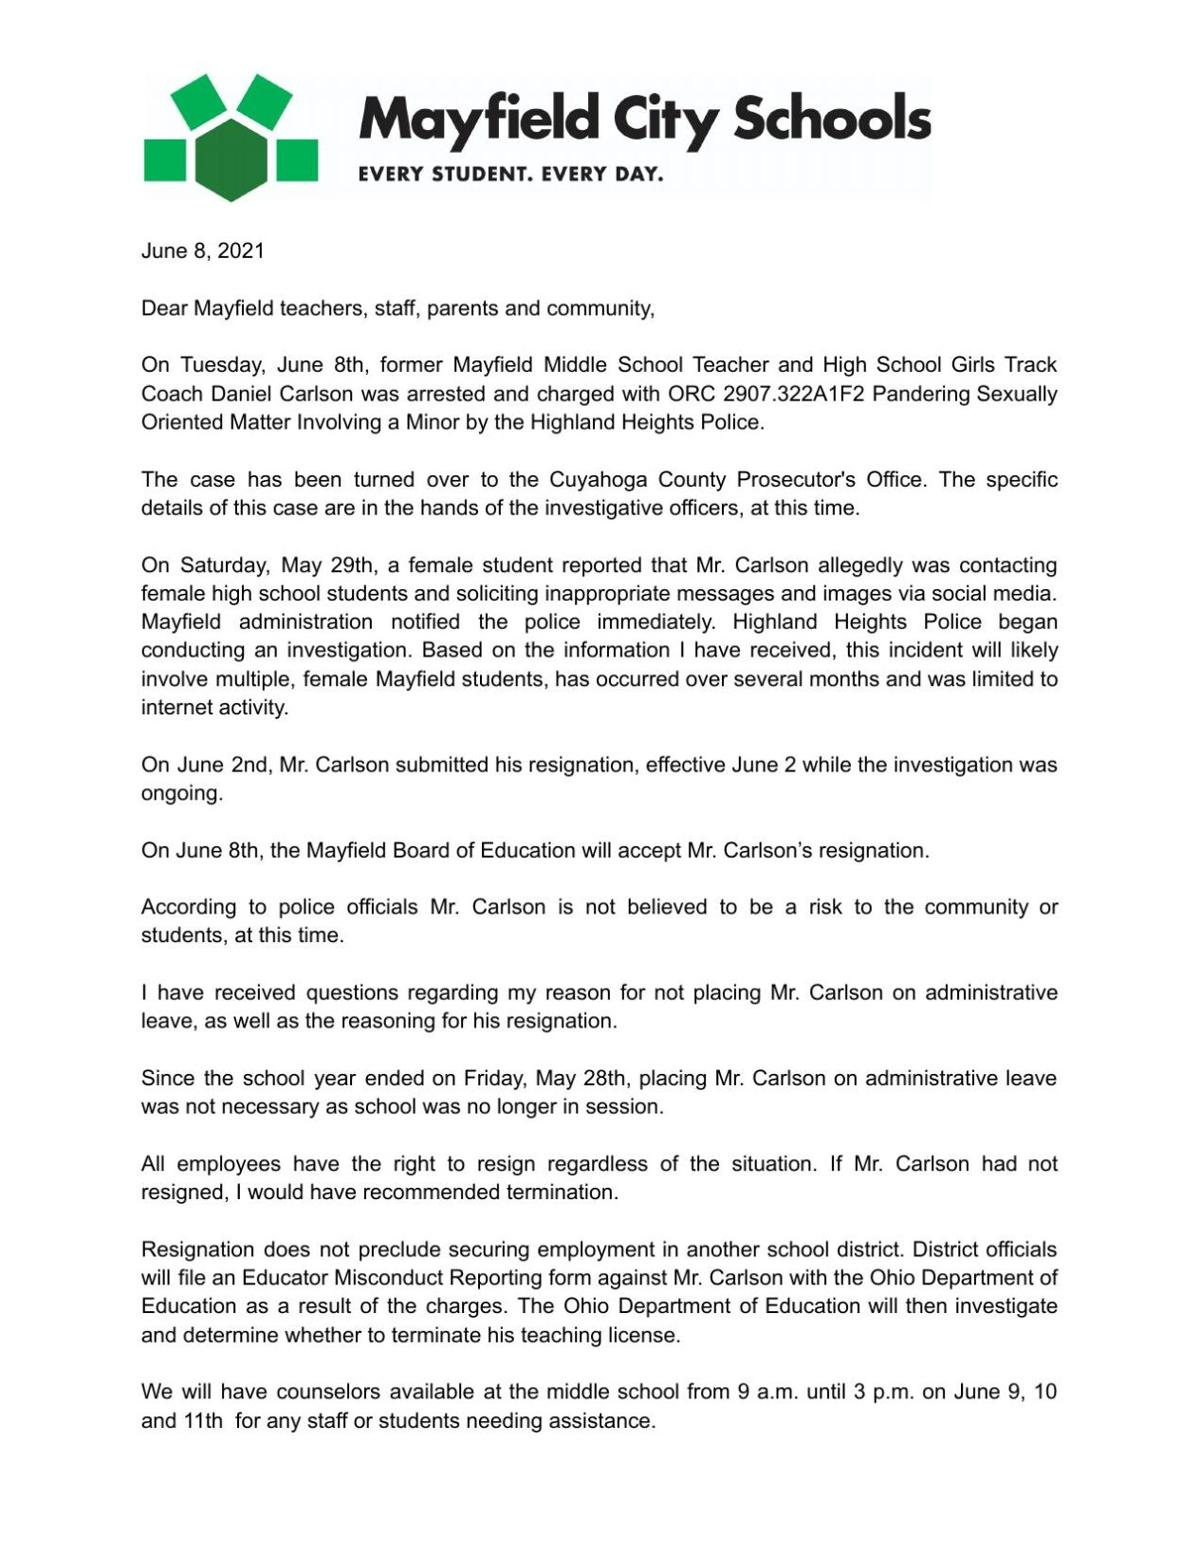 June 8 letter from Superintendent Keith Kelly